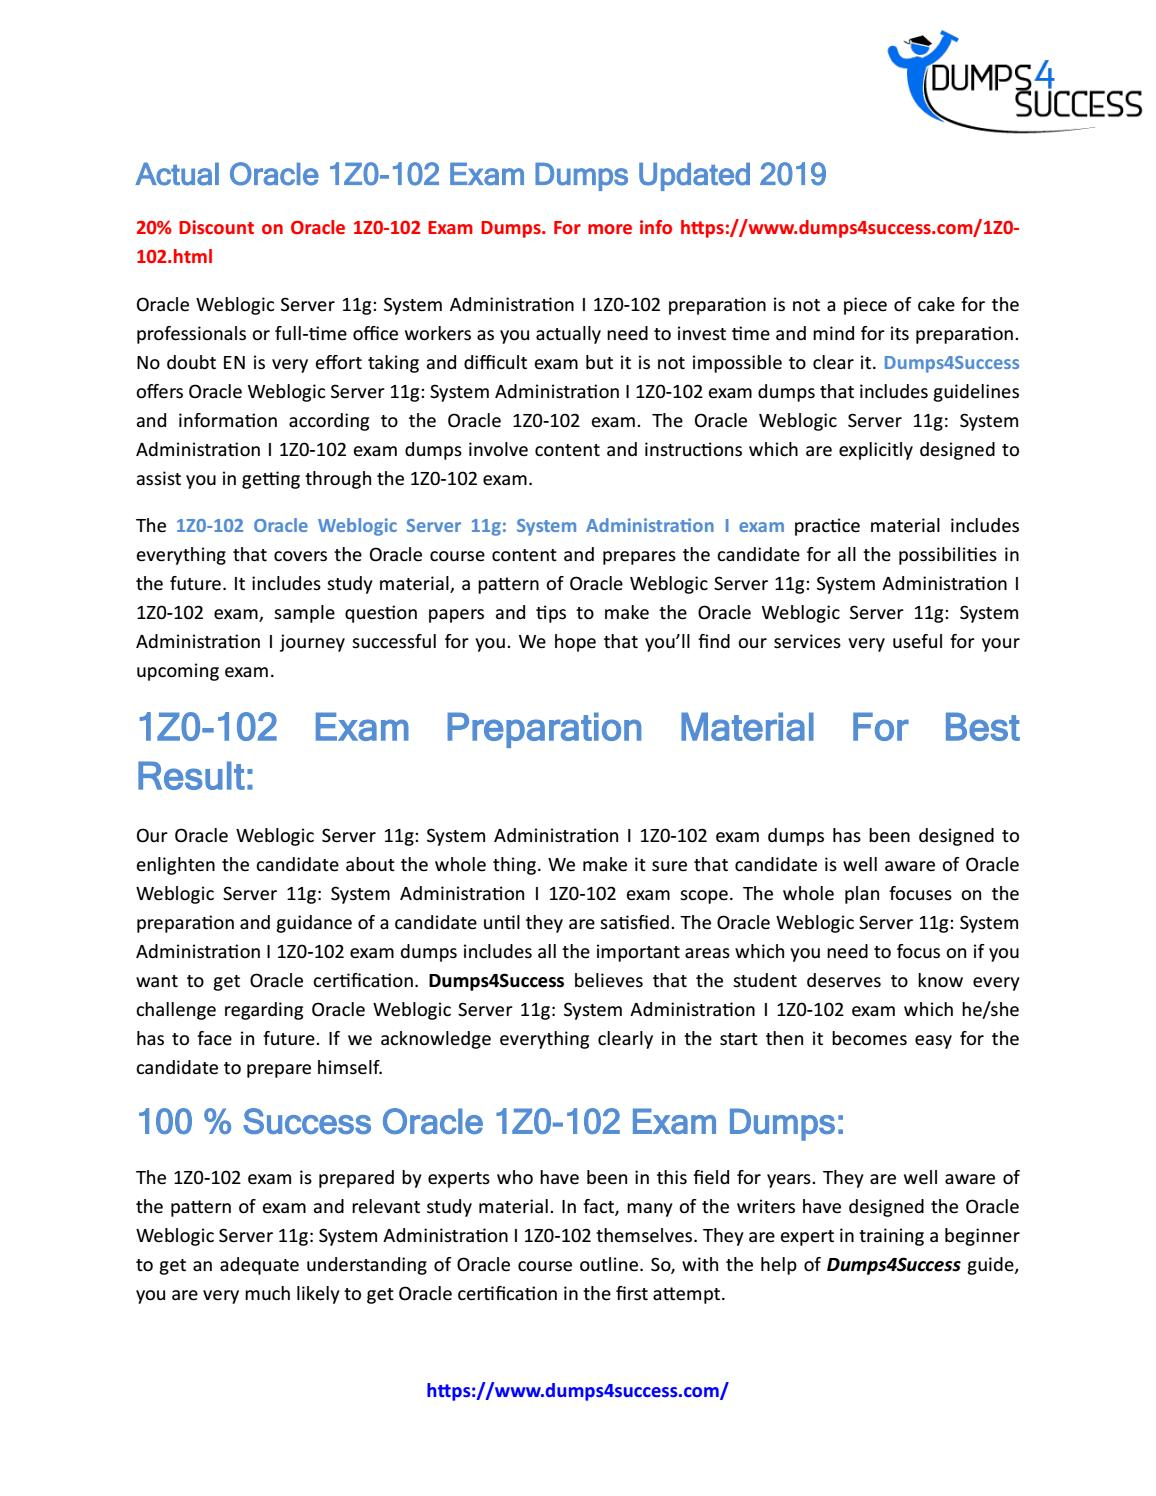 Oracle 1Z0-102 Briandumps Exam Questions by will70051 - issuu